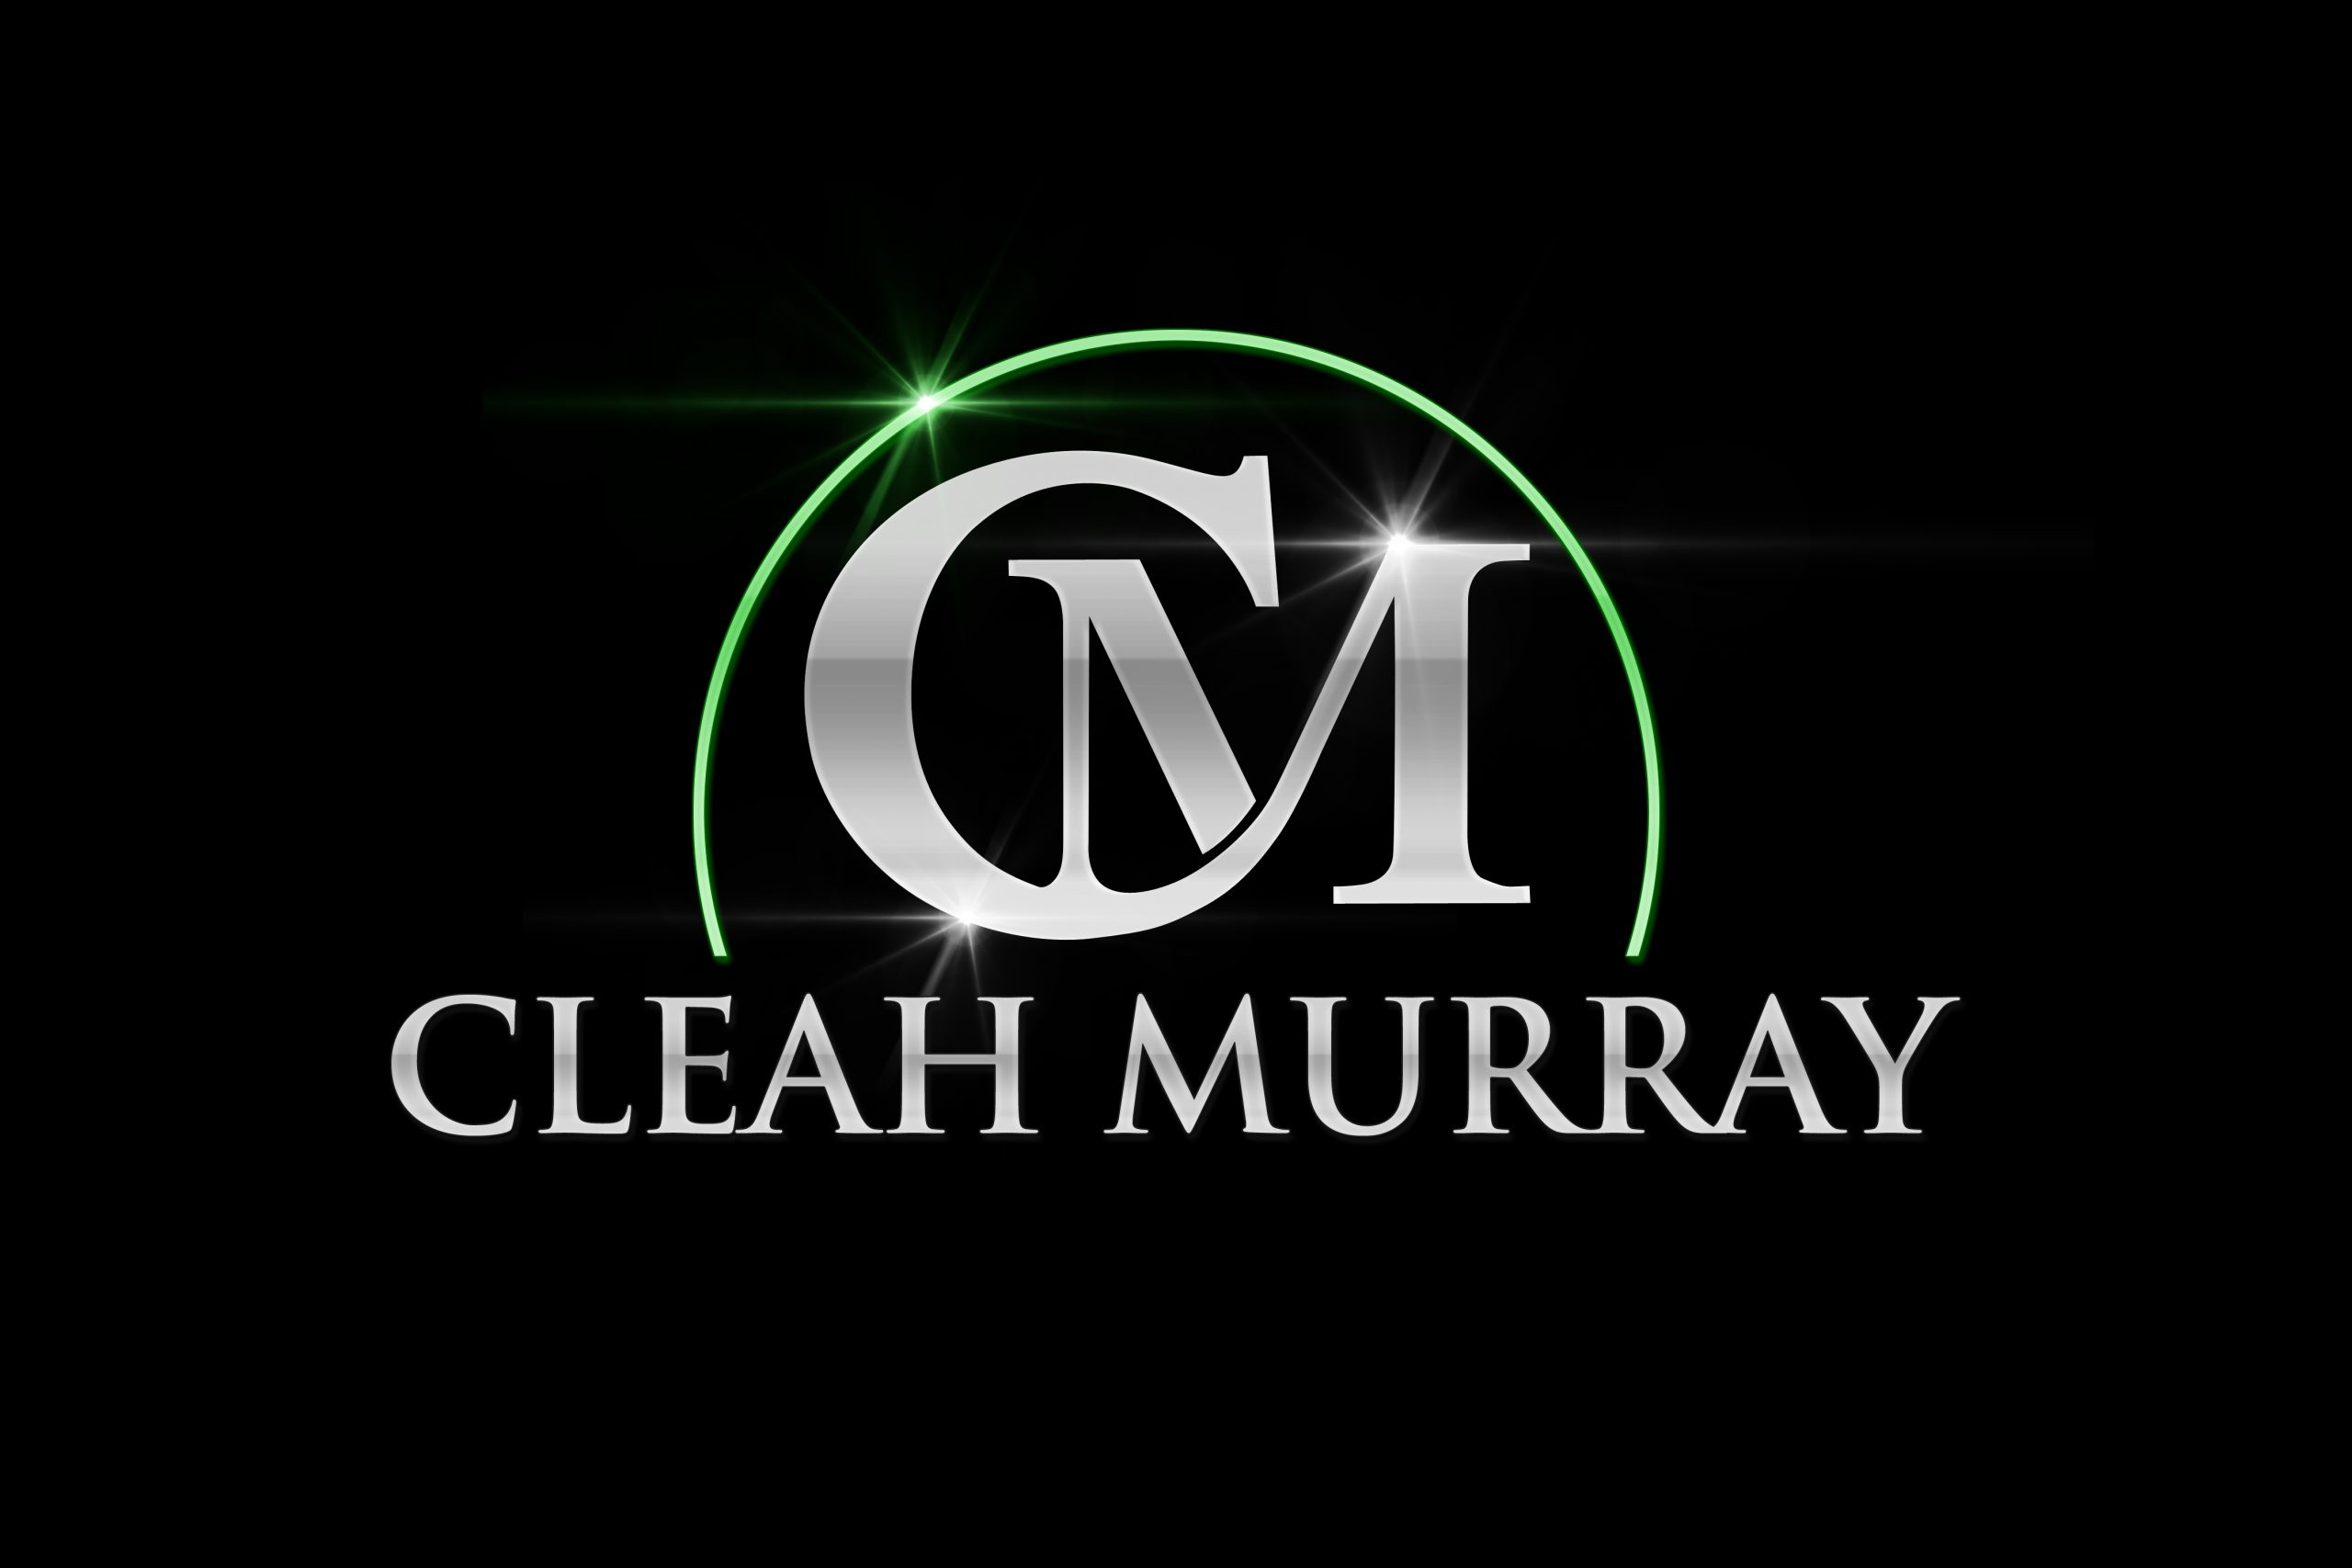 Cleah Murray Logo